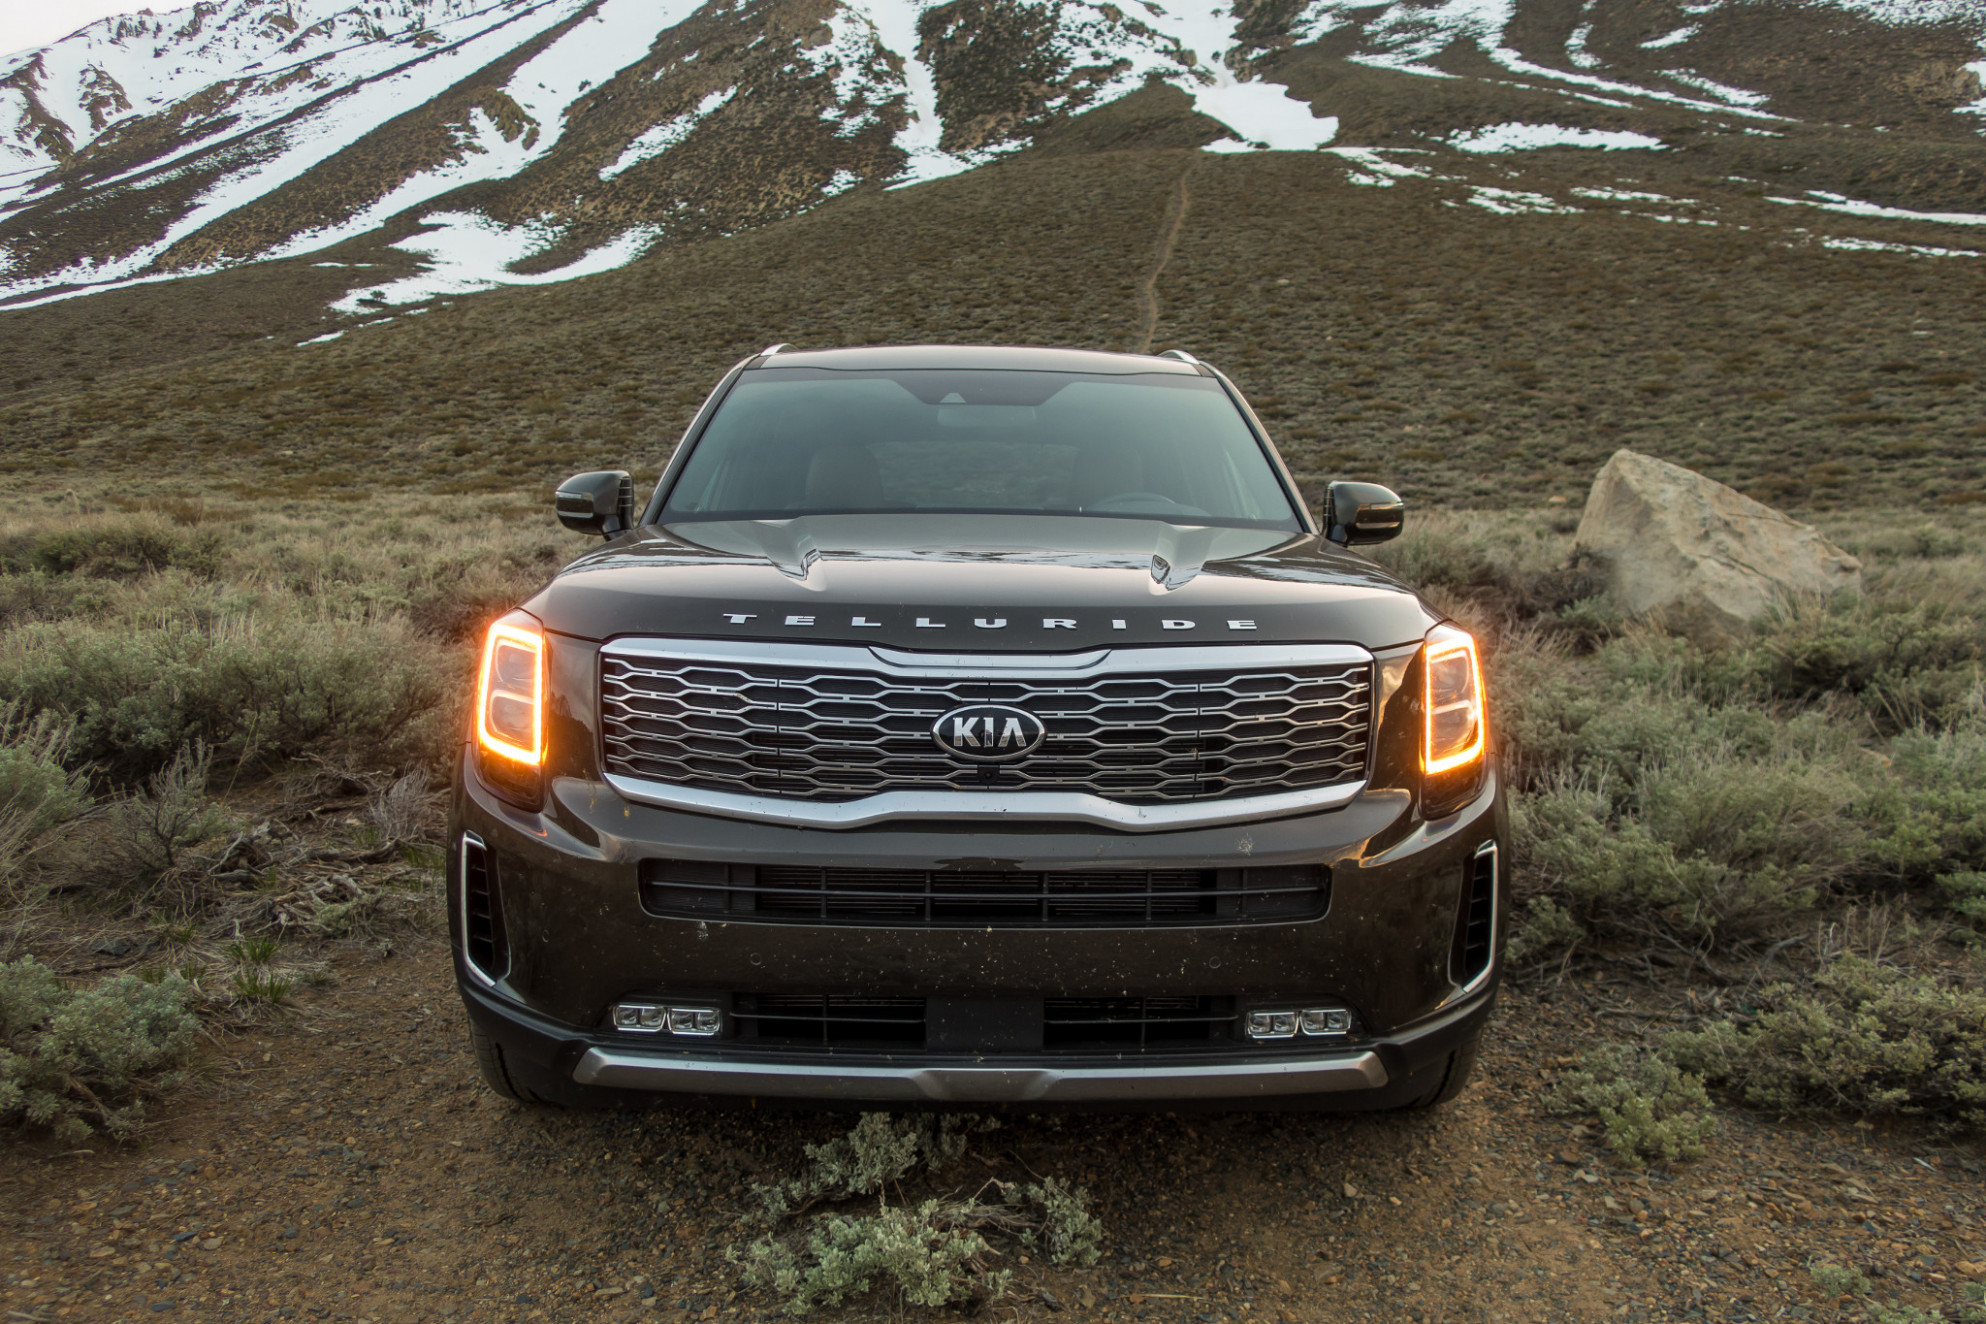 Telluride-or-Die: New Kia SUV So Much Better Than Sorento, It's ...